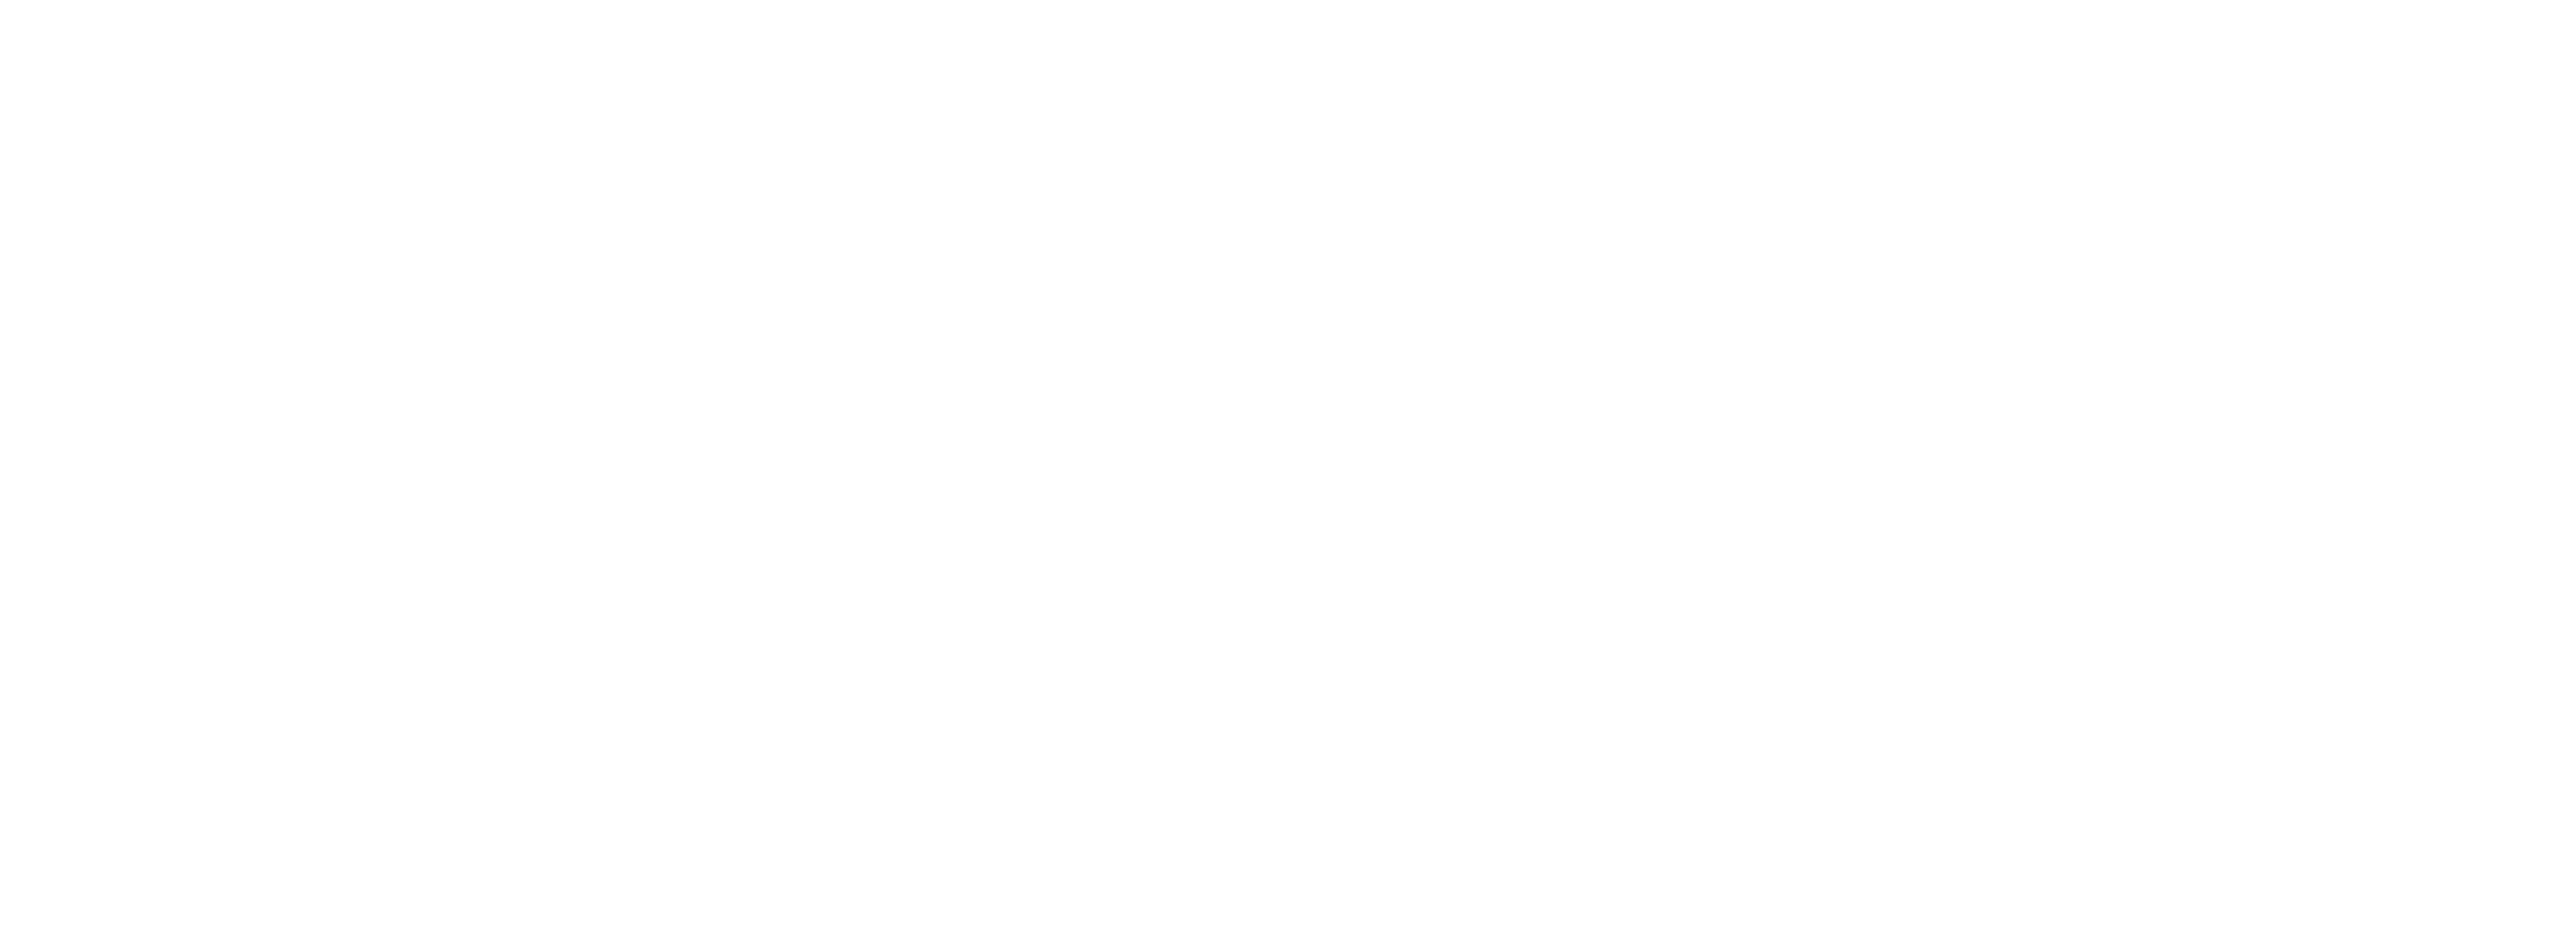 Caviar-De-Neuvic-White-rezized